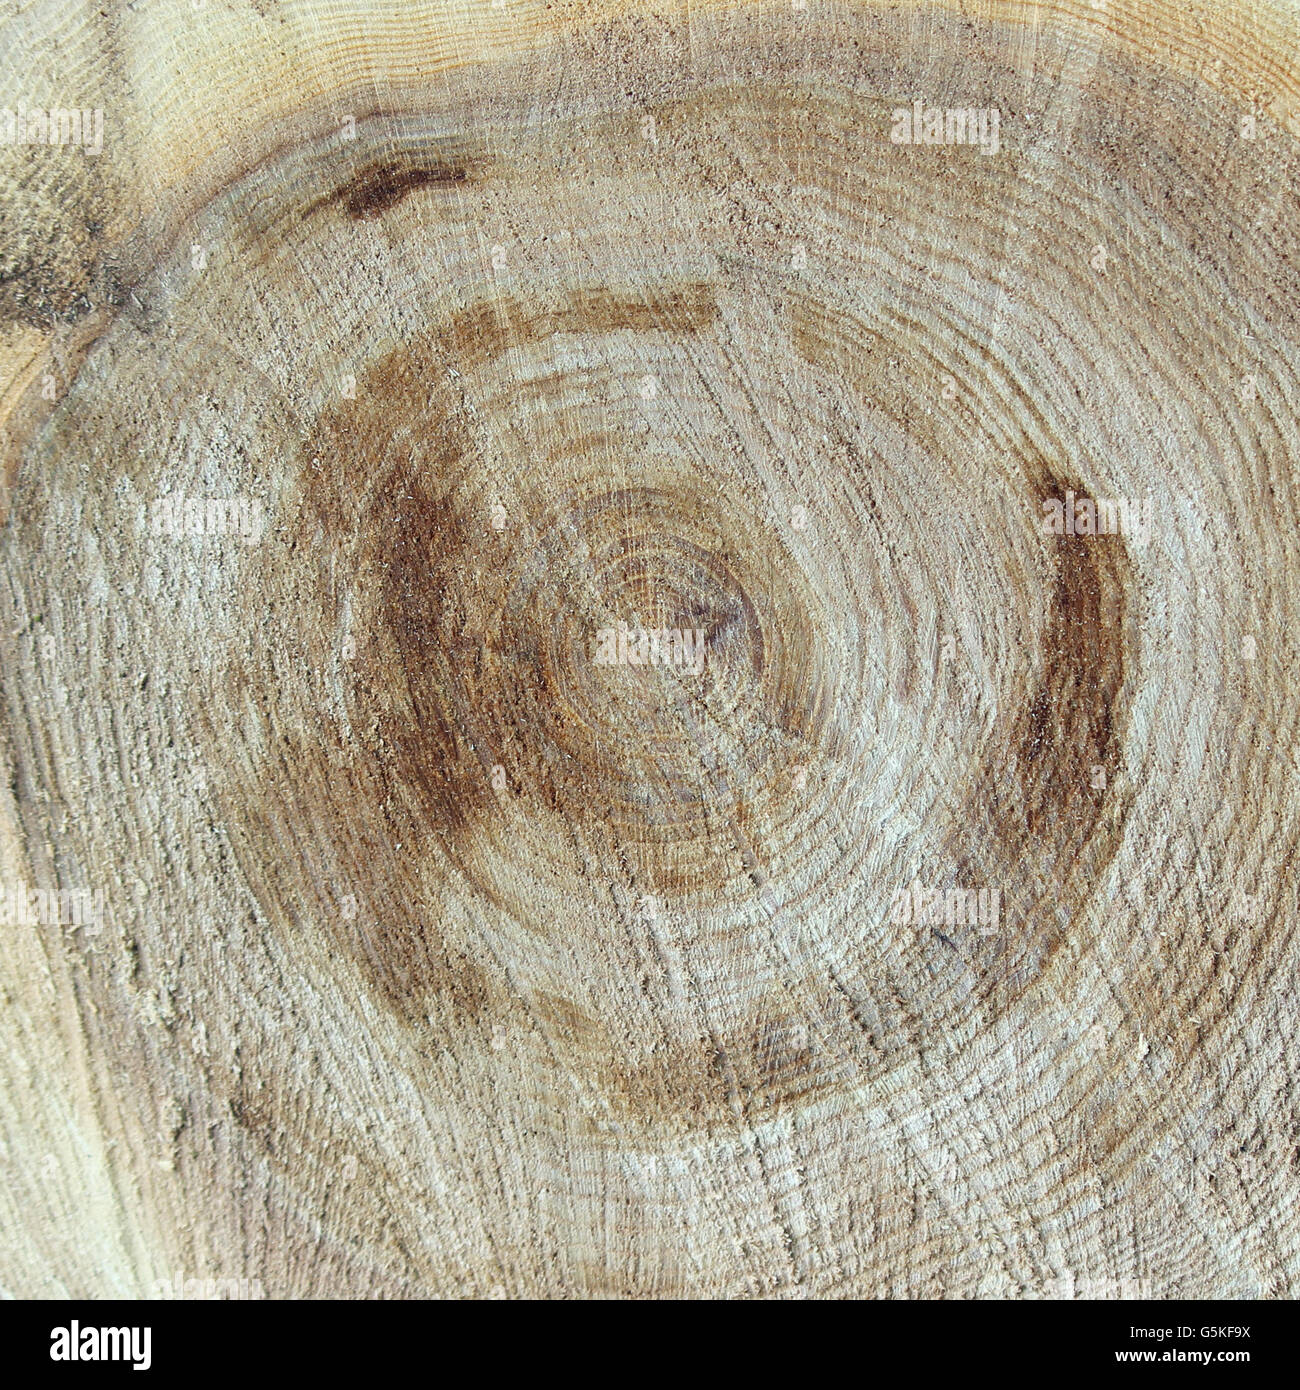 Texture saw cut the old tree. - Stock Image